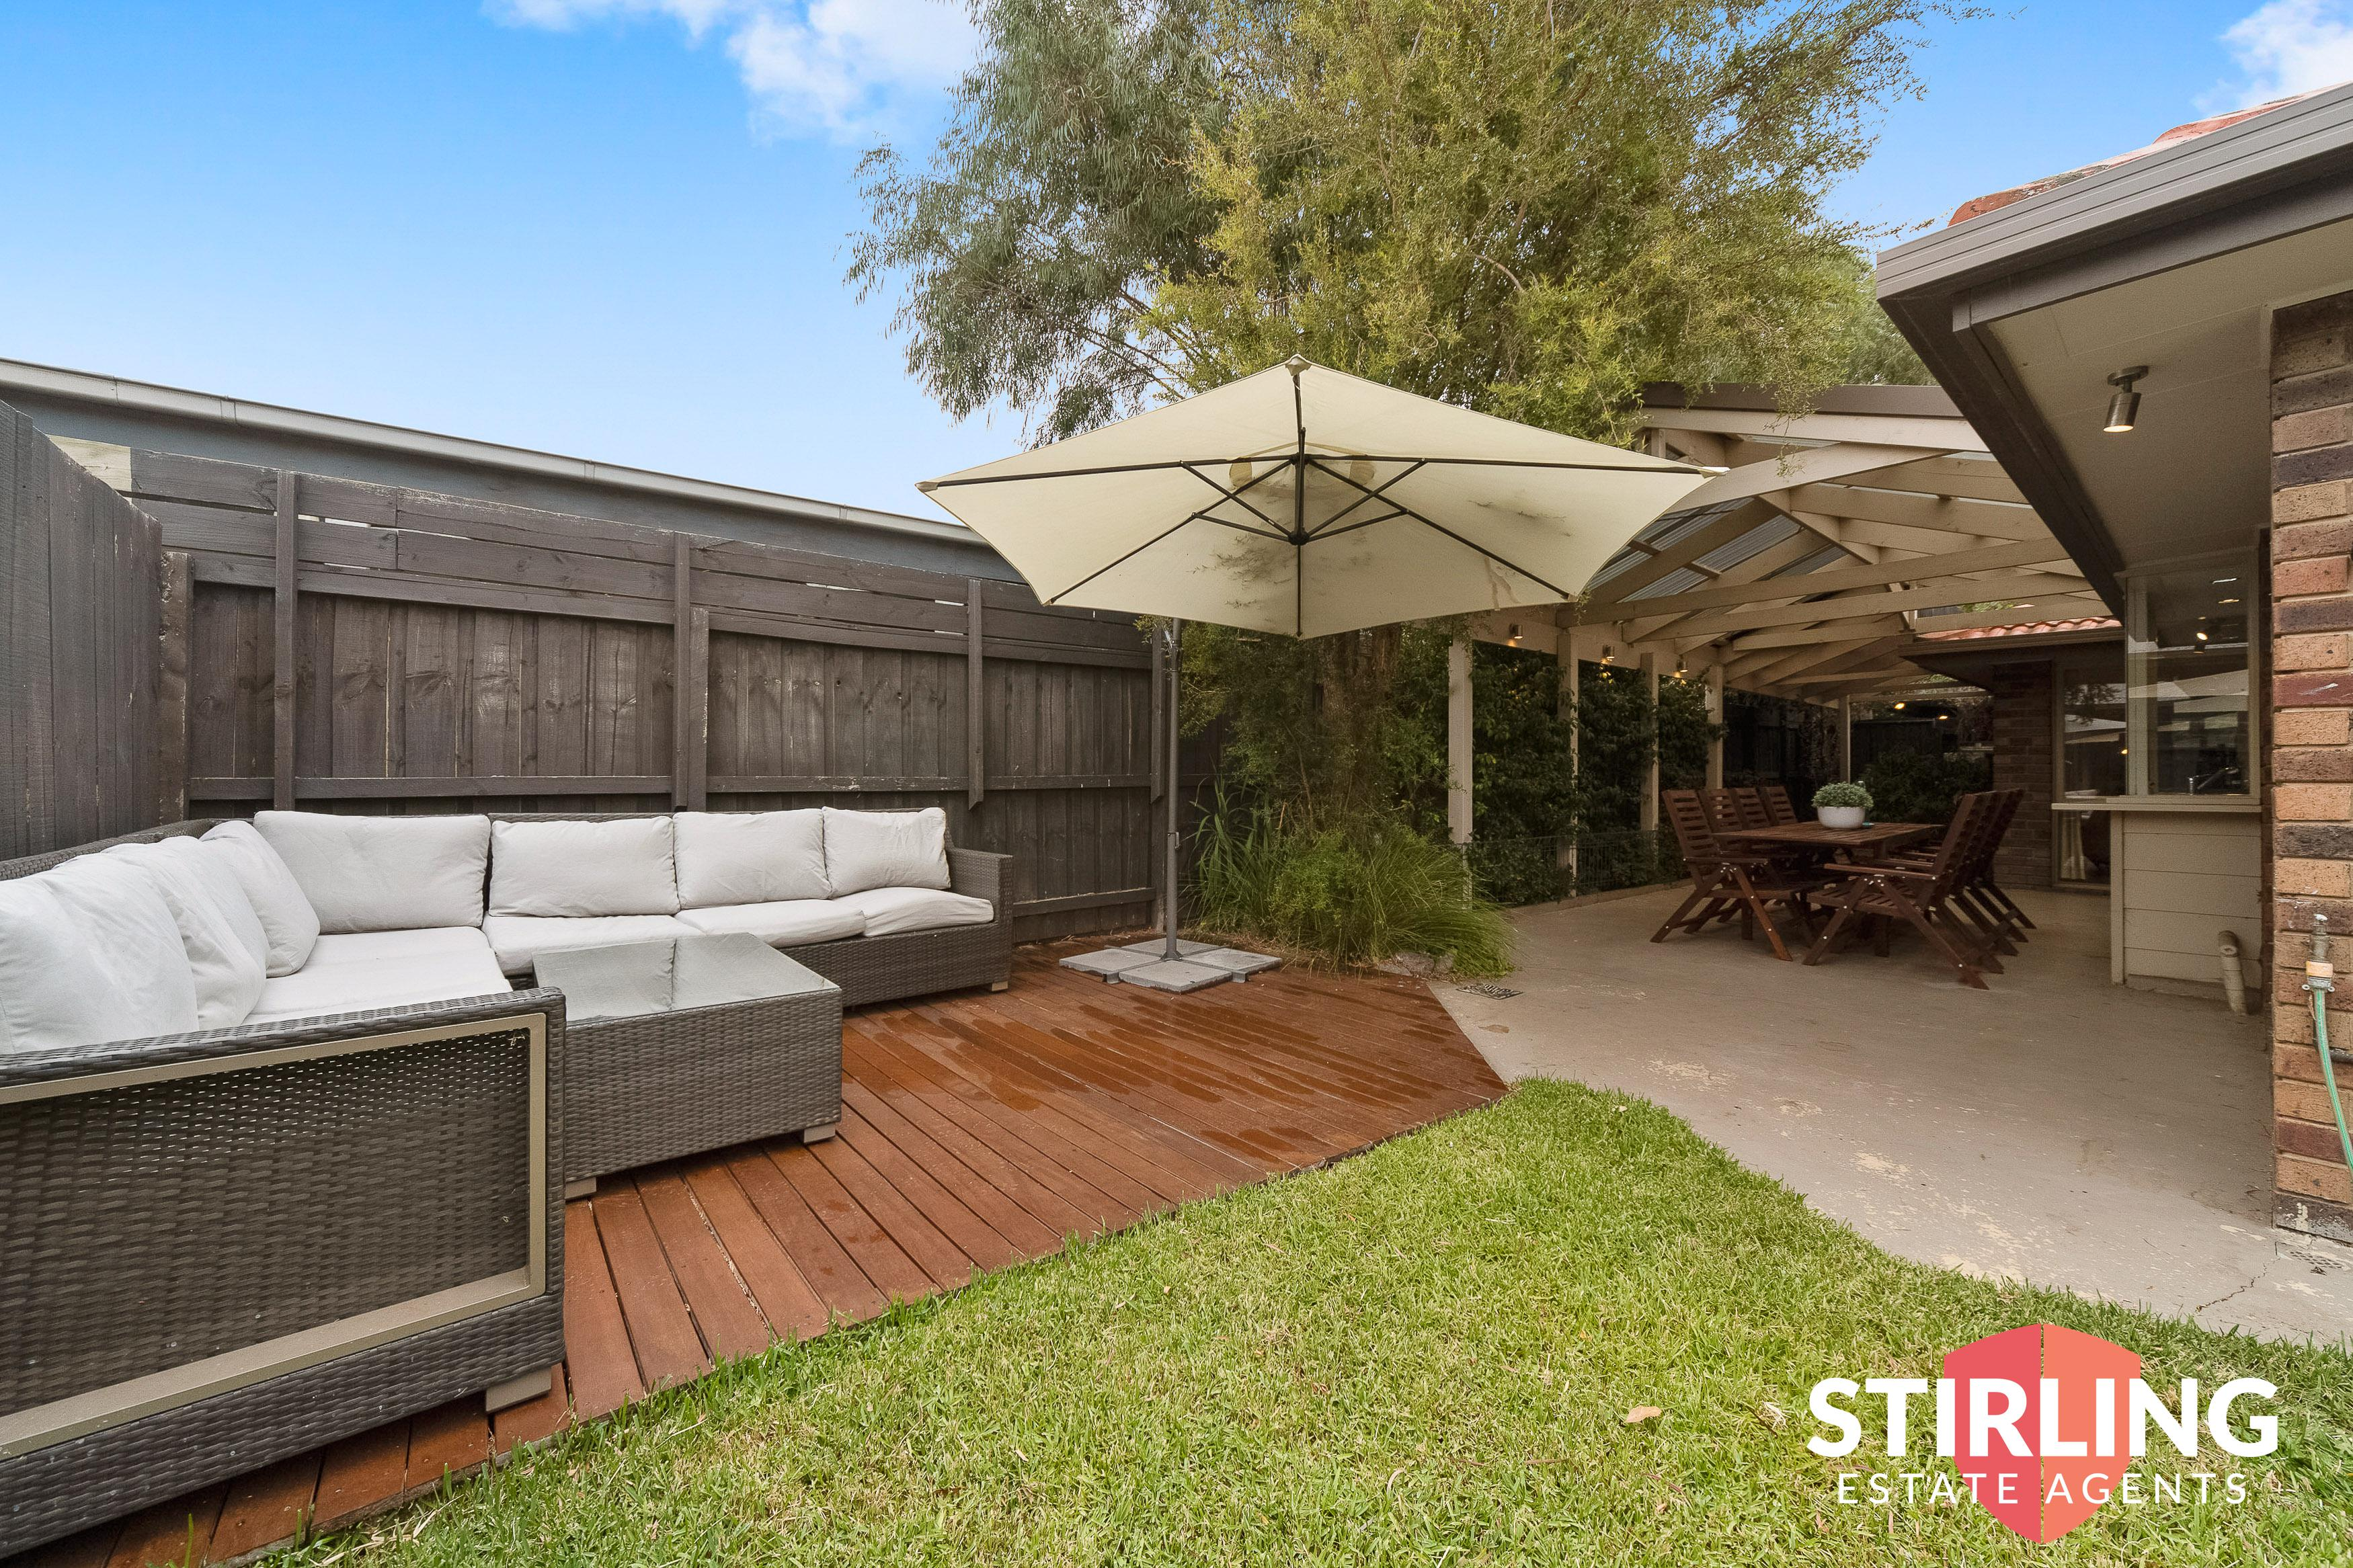 1/9 Baxter-Tooradin Road, PEARCEDALE, VIC, 3912 - Image